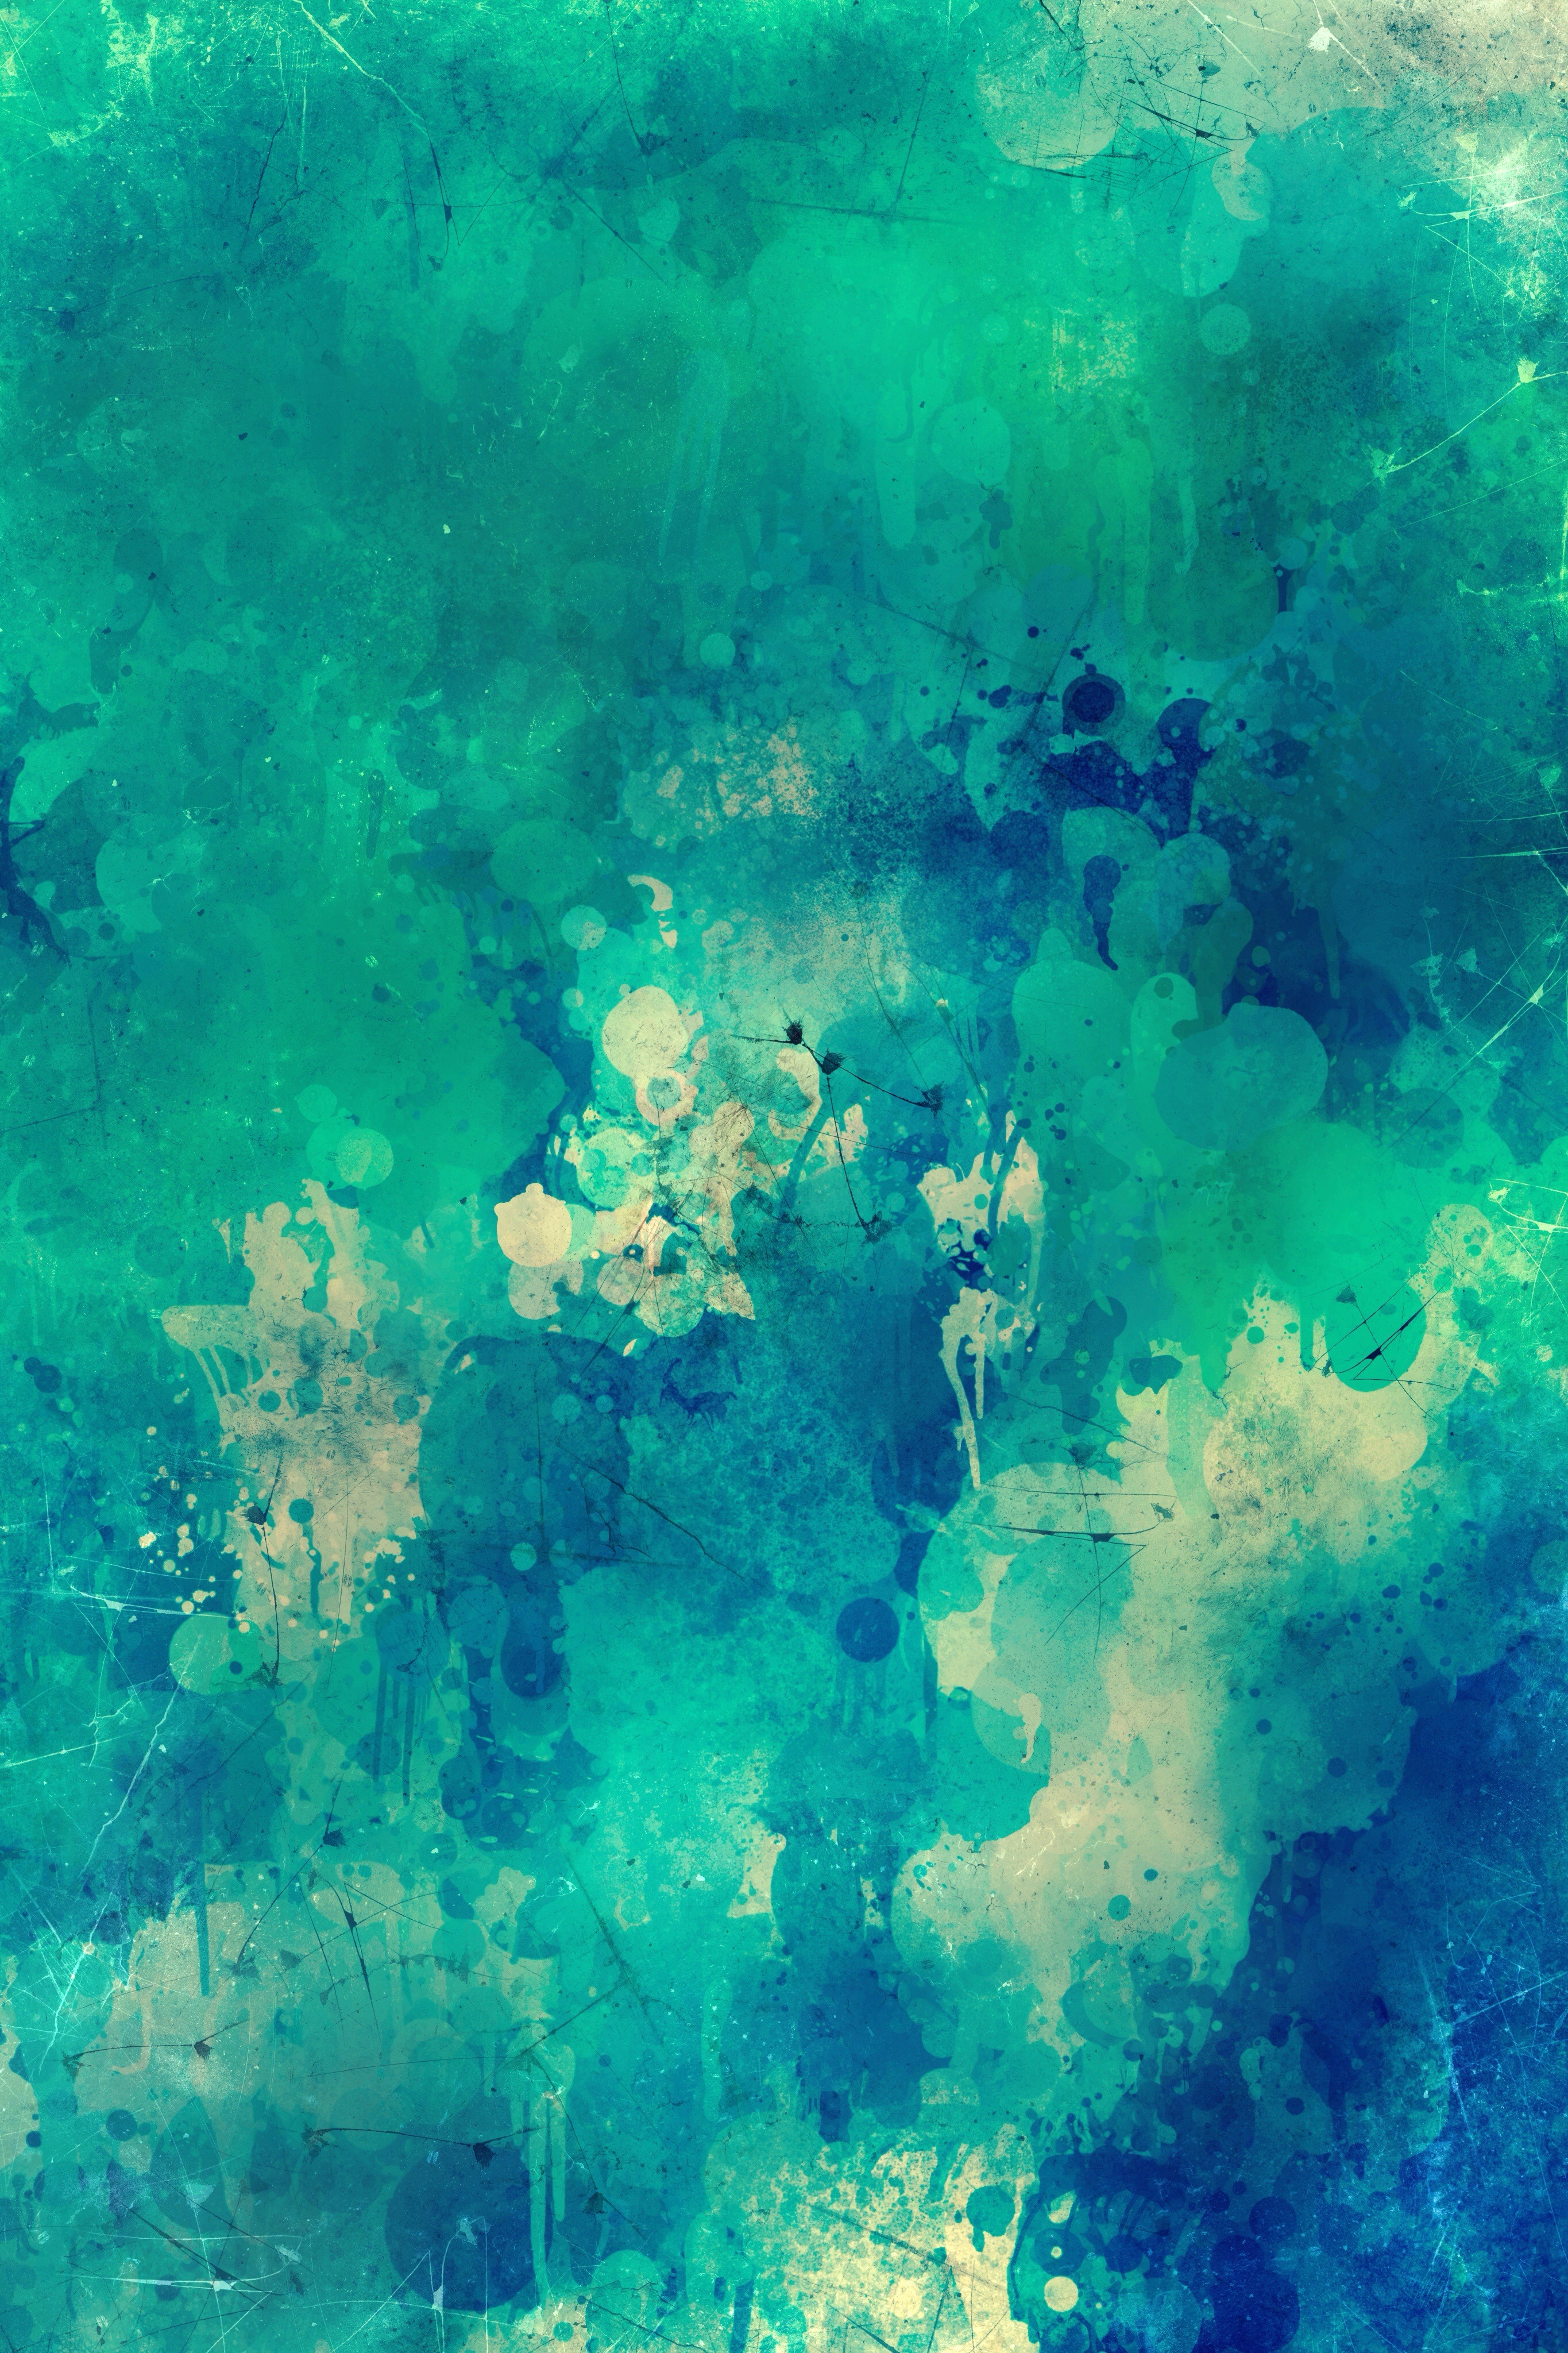 54525 download wallpaper Textures, Background, Divorces, Texture, Stains, Spots, Watercolor screensavers and pictures for free